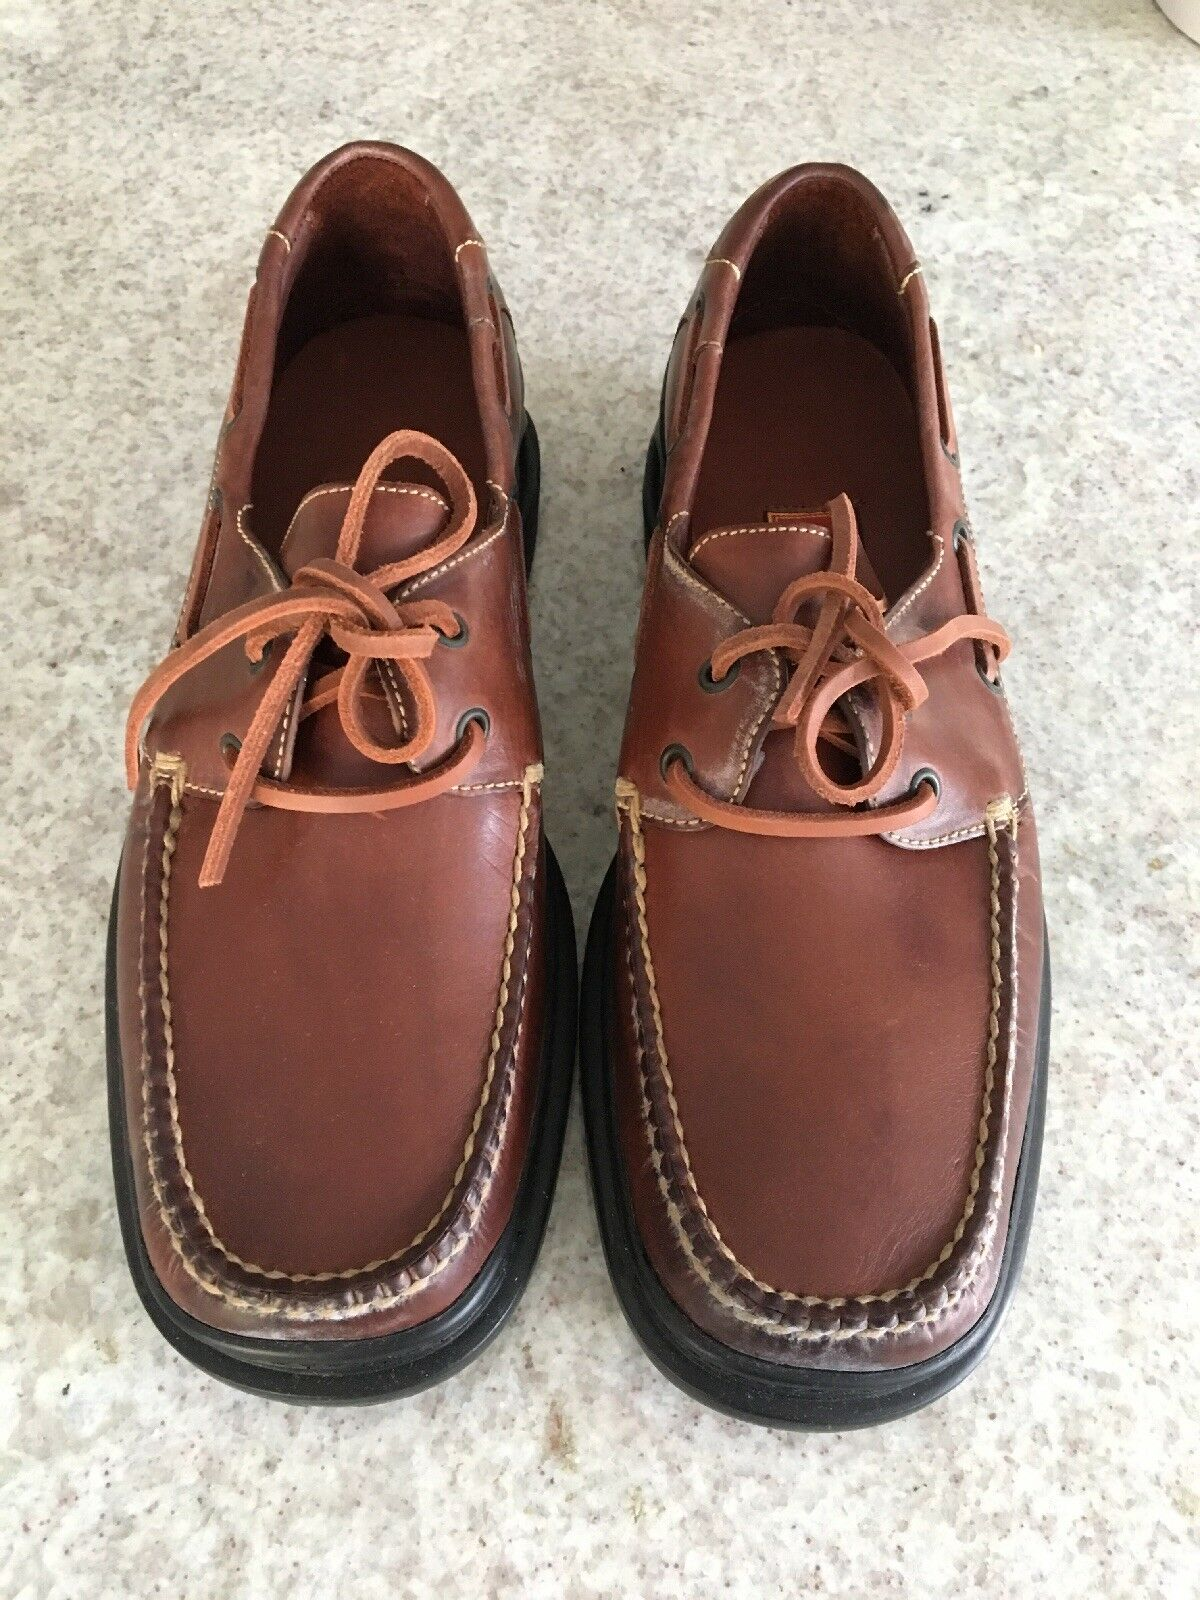 New In Box Cole Haan Southport Moc 9M